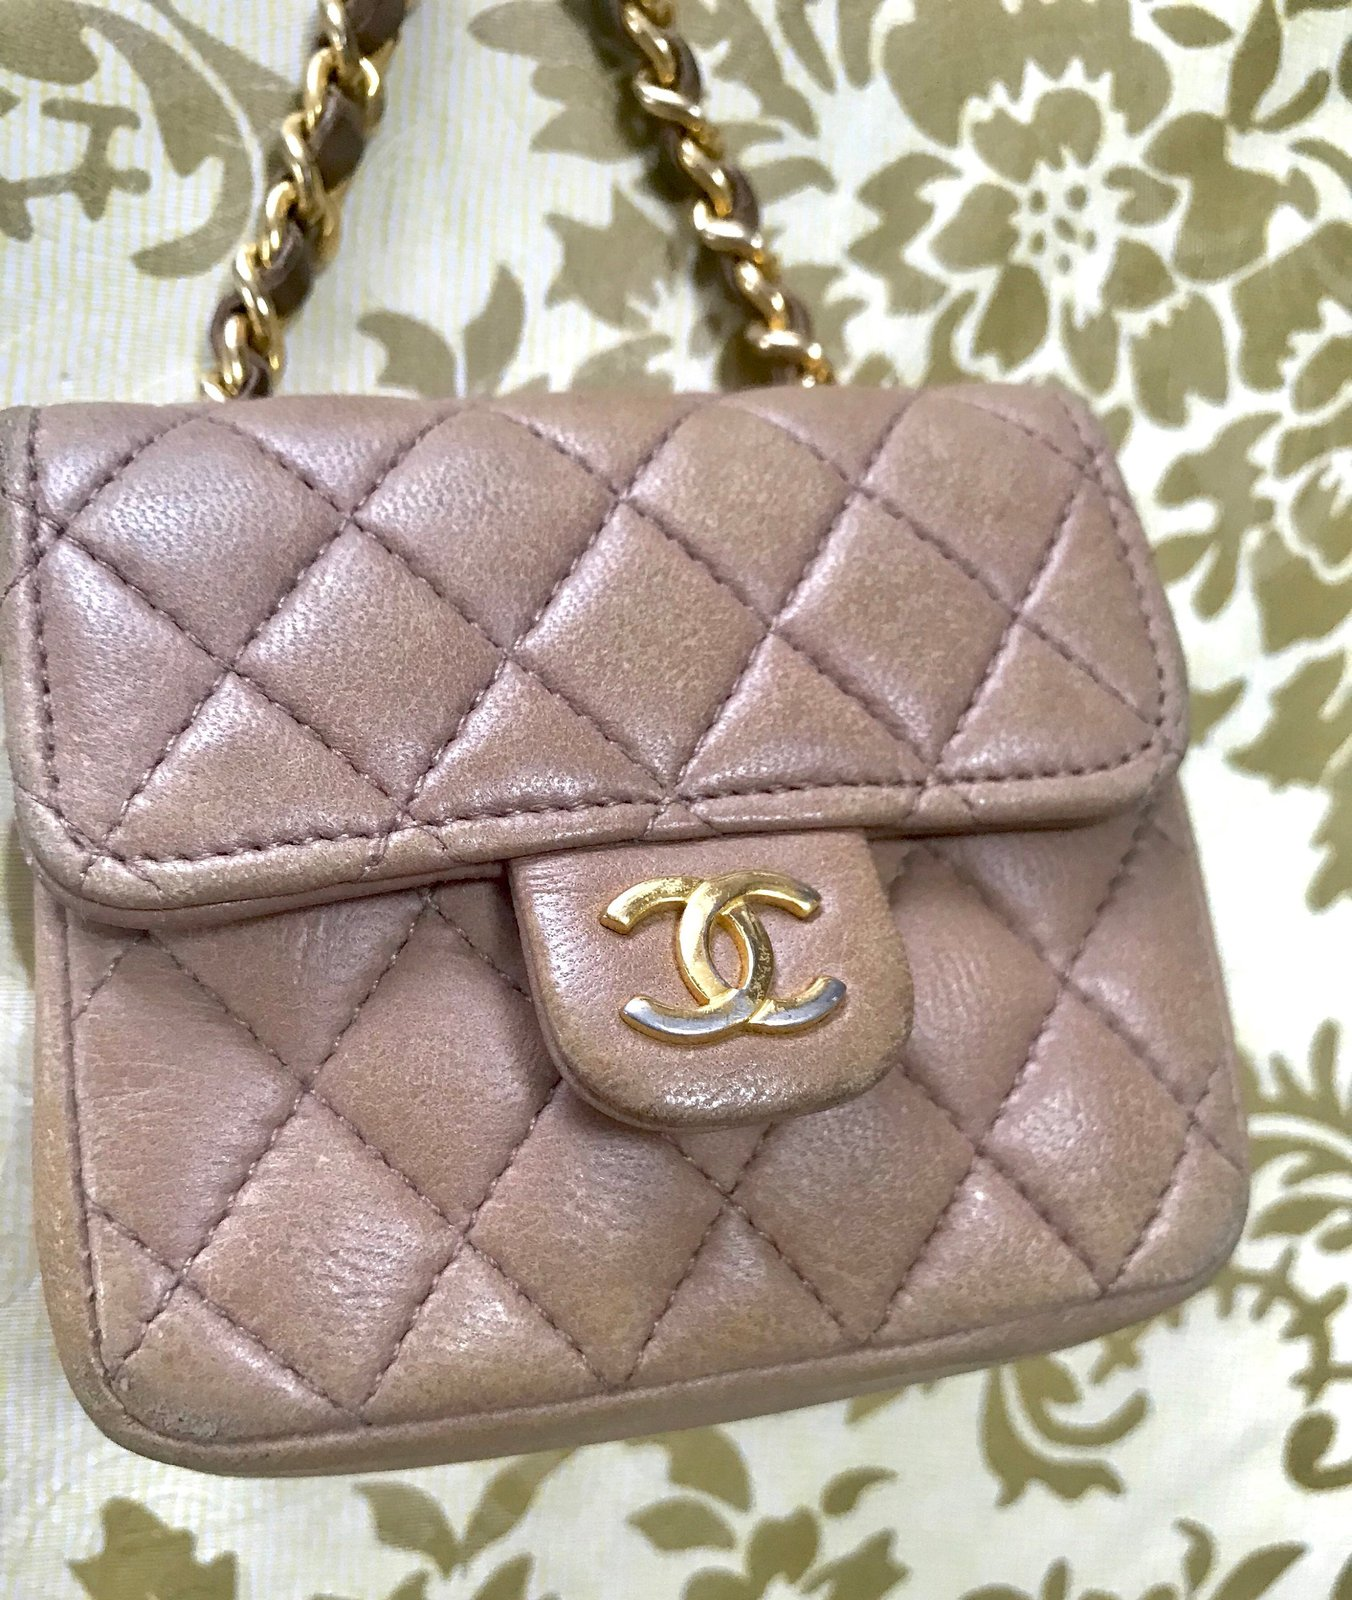 4c2e2675bb45 Vintage CHANEL taupe brown lambskin mini 2.55 bag charm with brown leather  and g